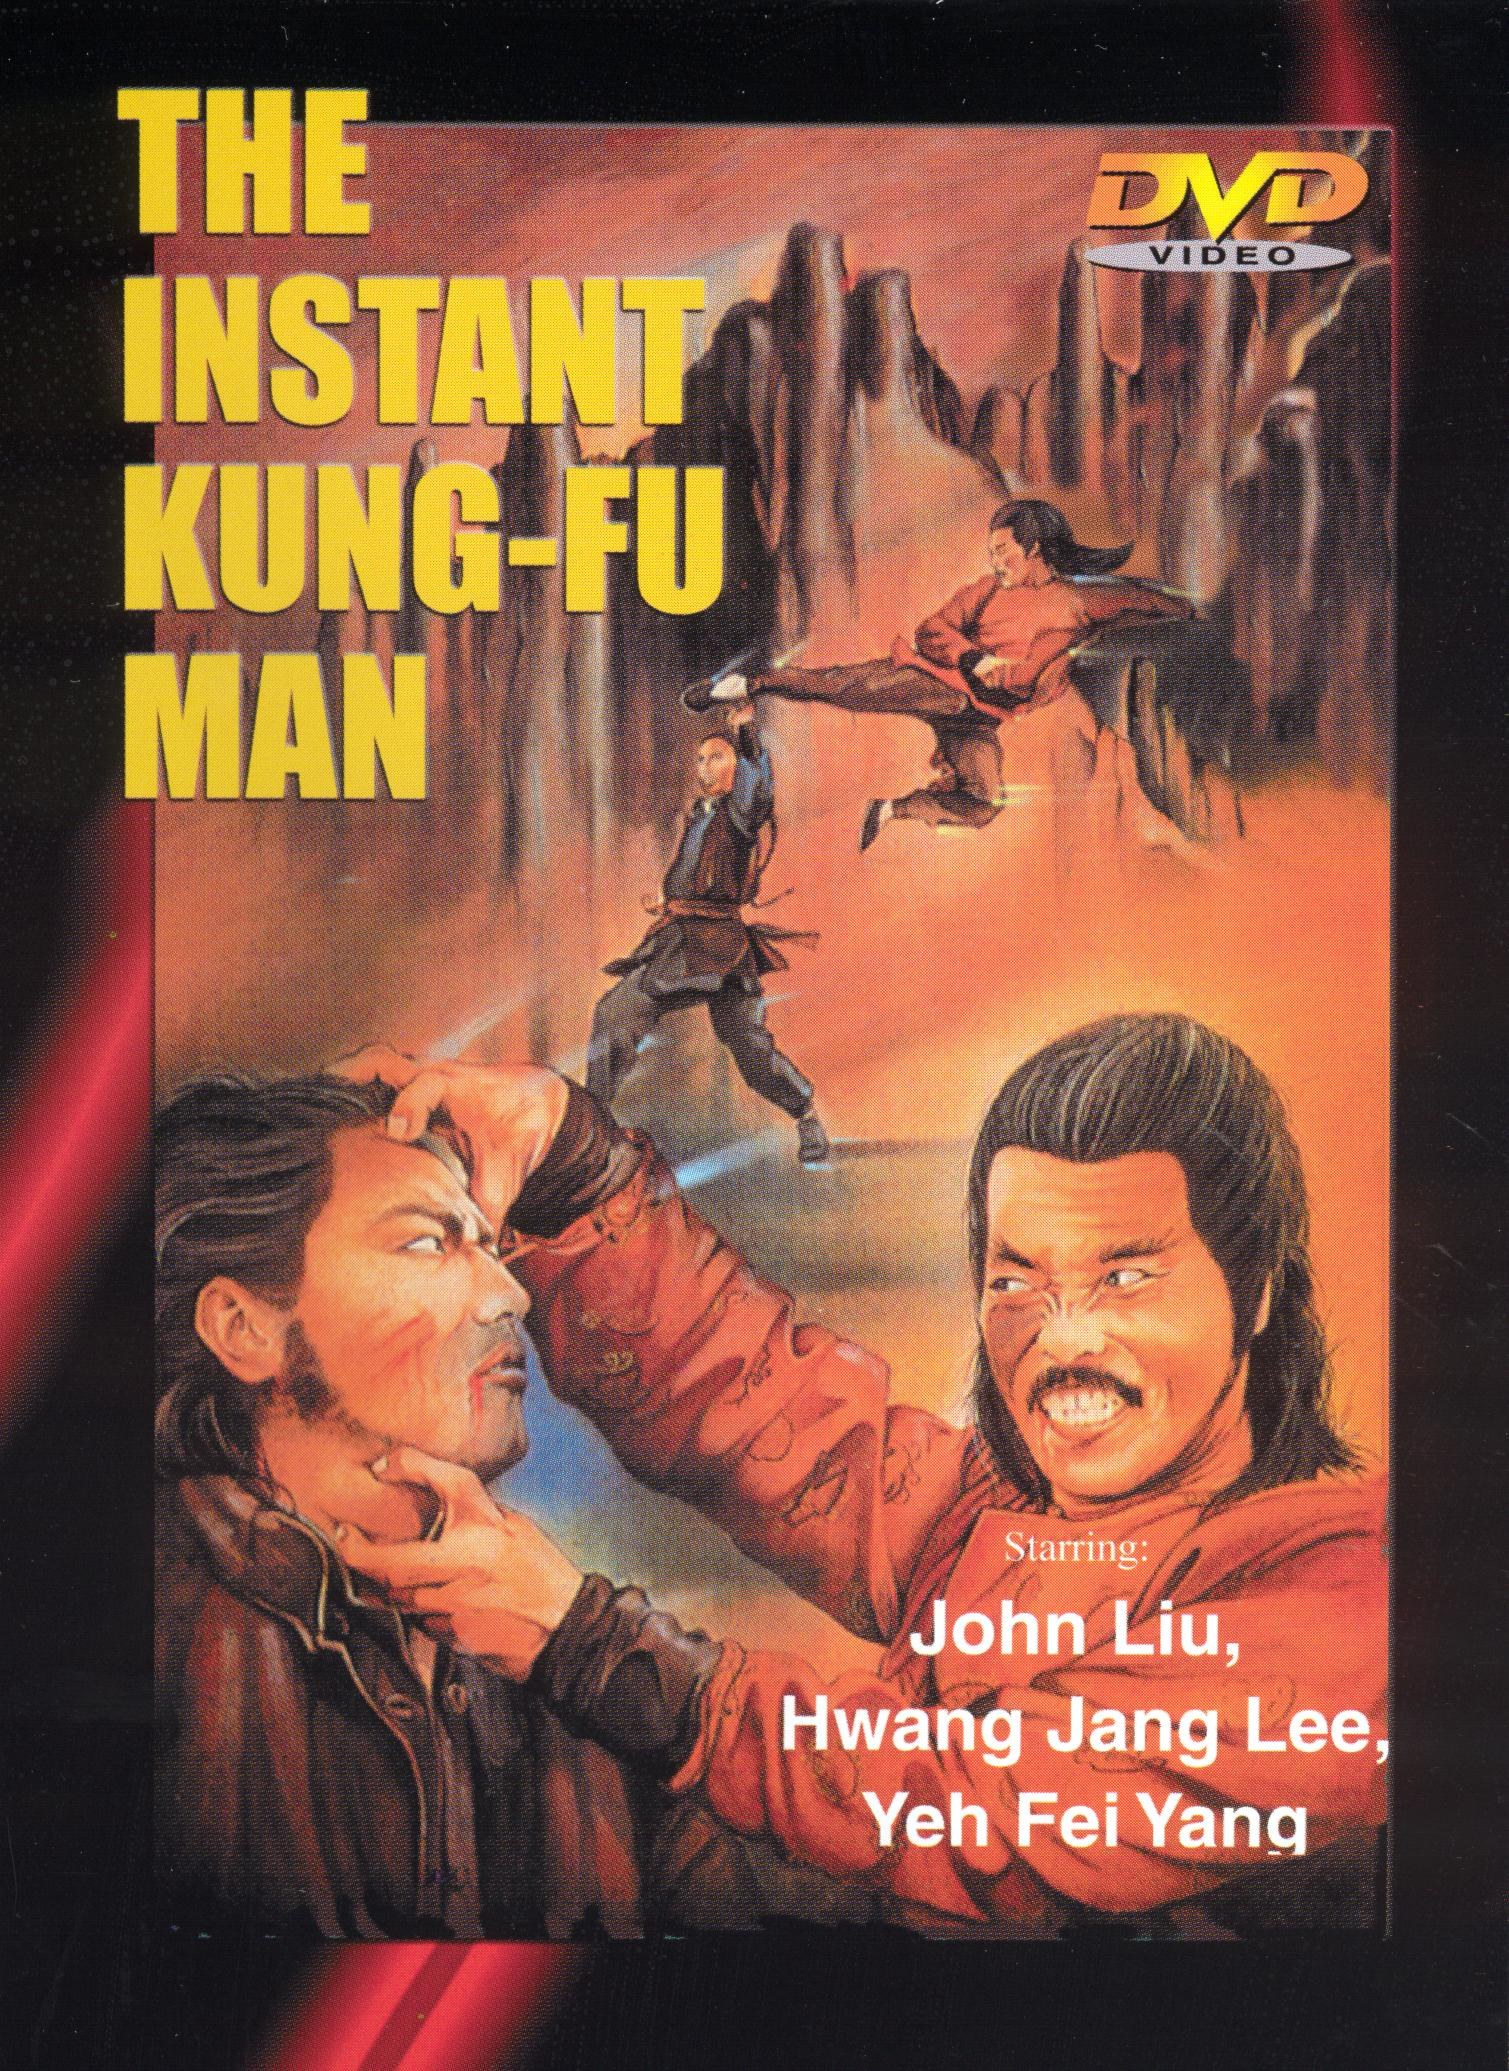 The Instant Kung-Fu Man